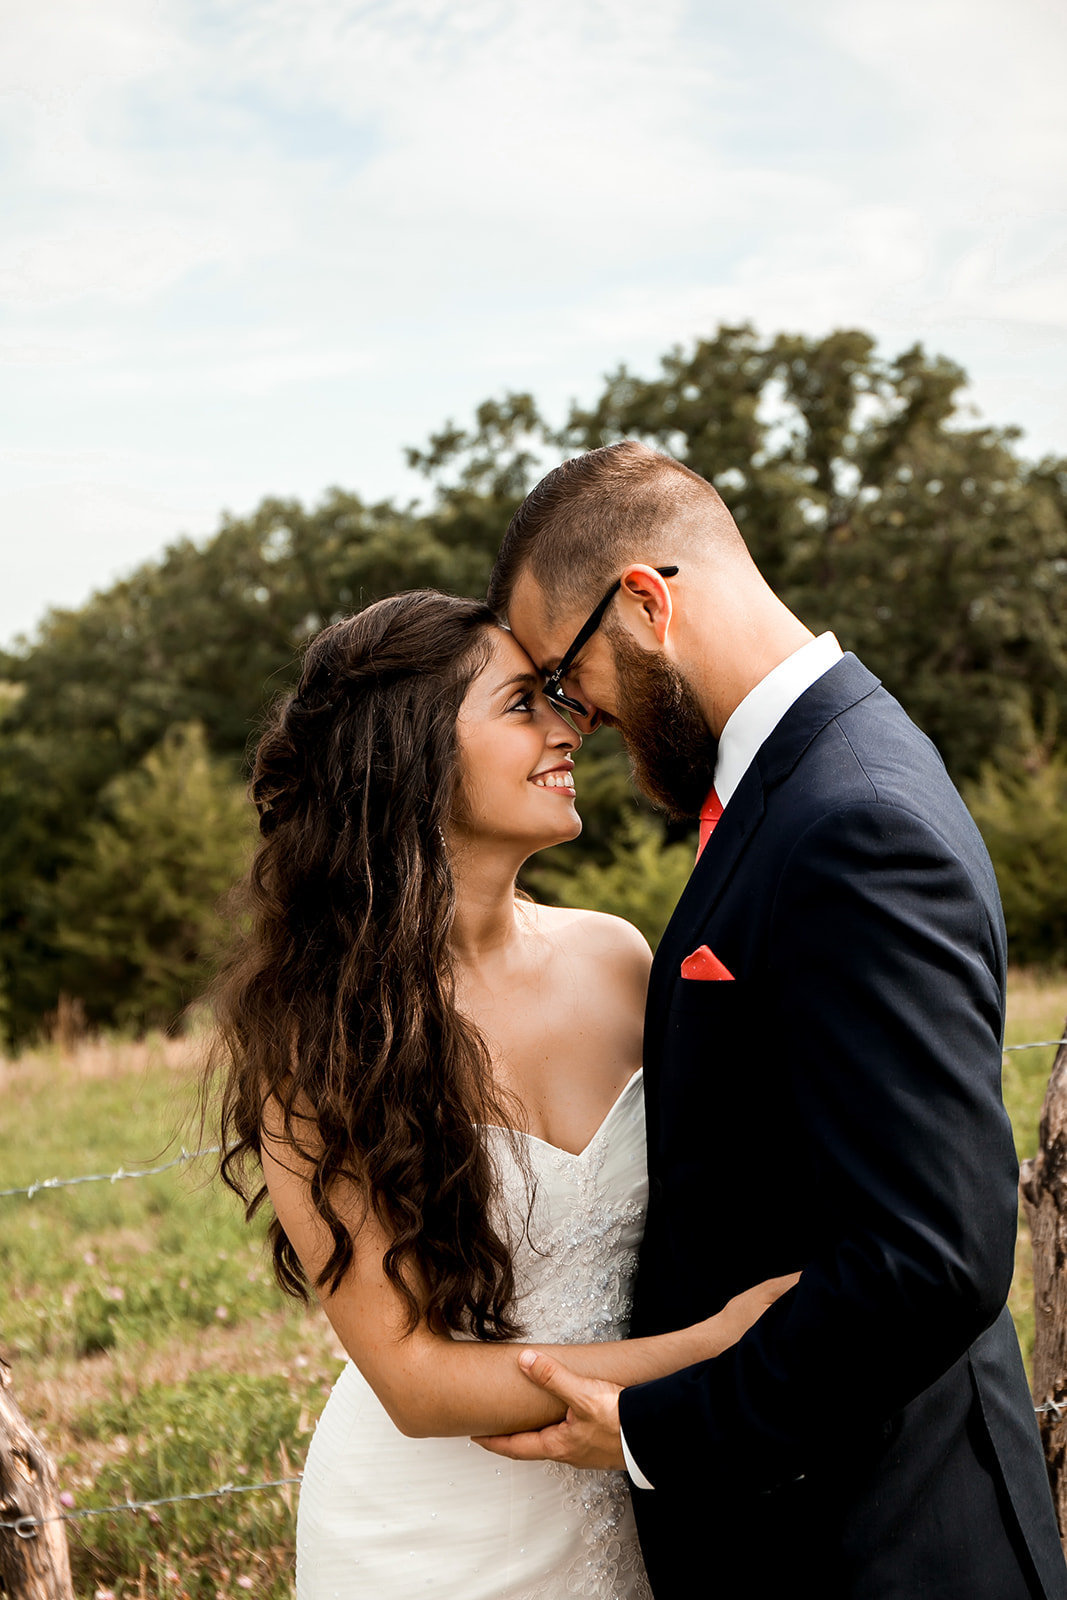 Des Moines Iowa wedding couple foreheads together in the field.